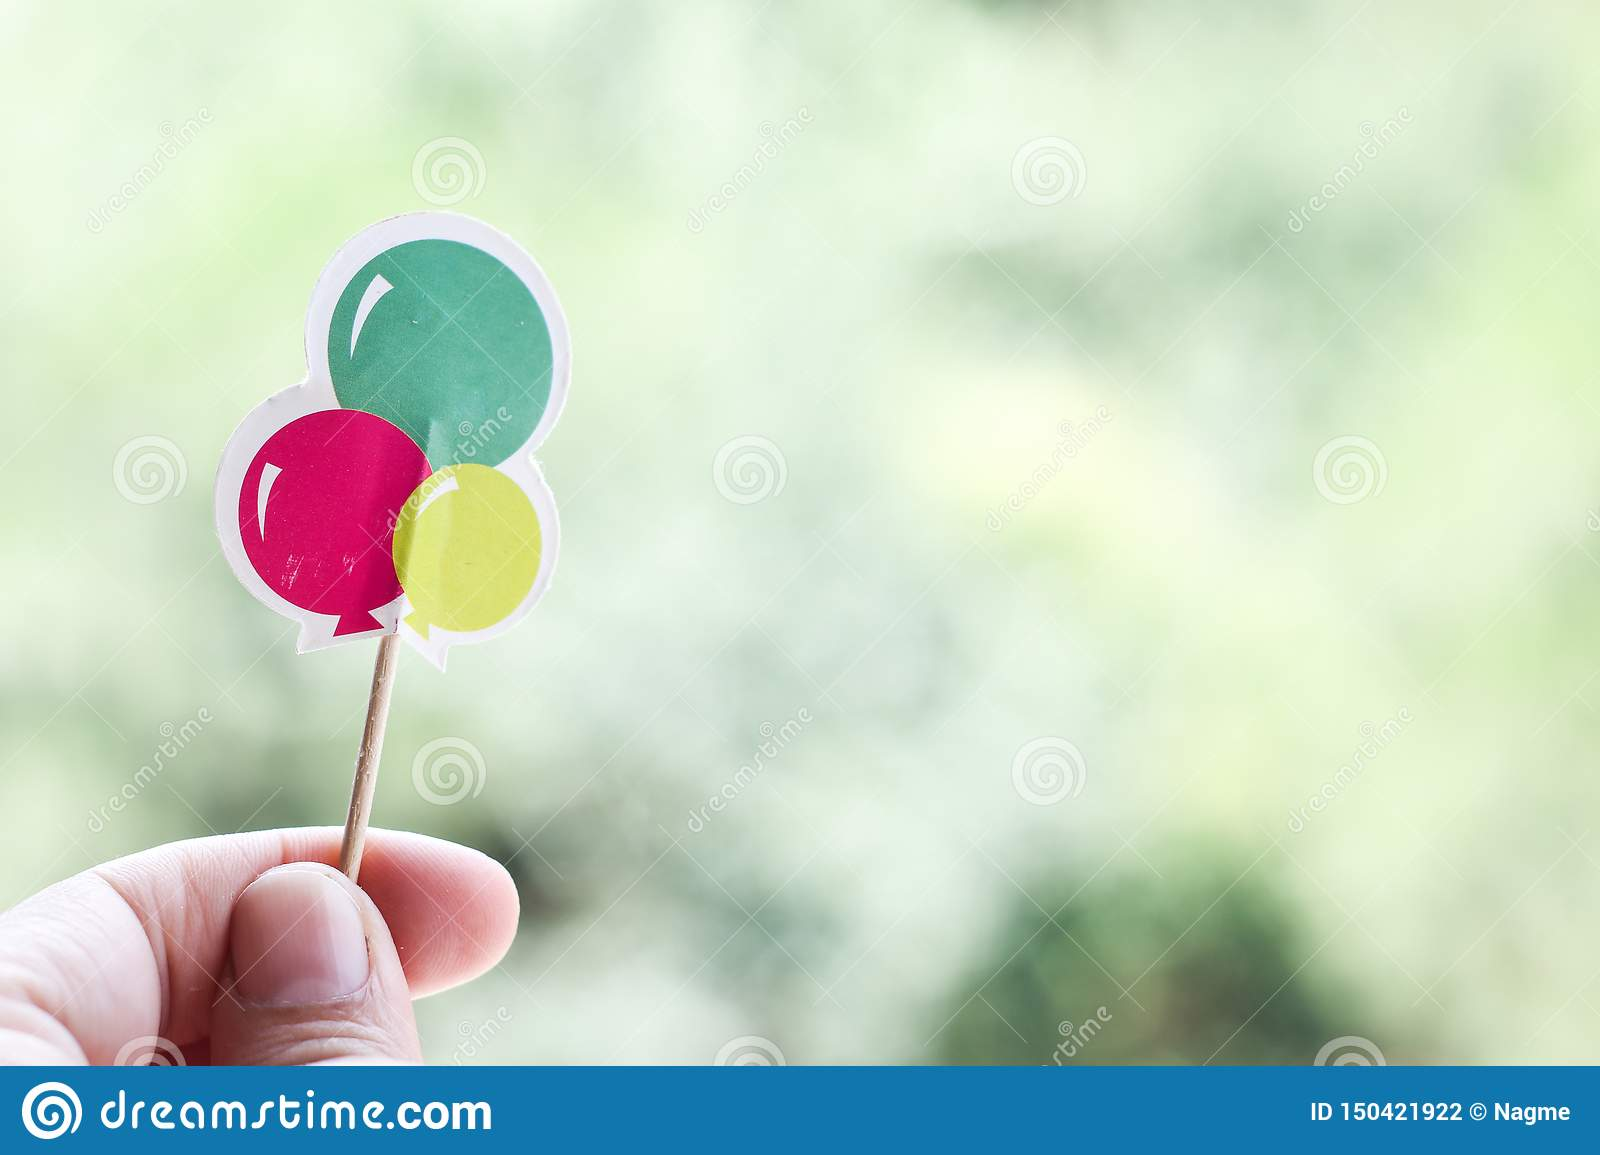 Hand holding paper balloons